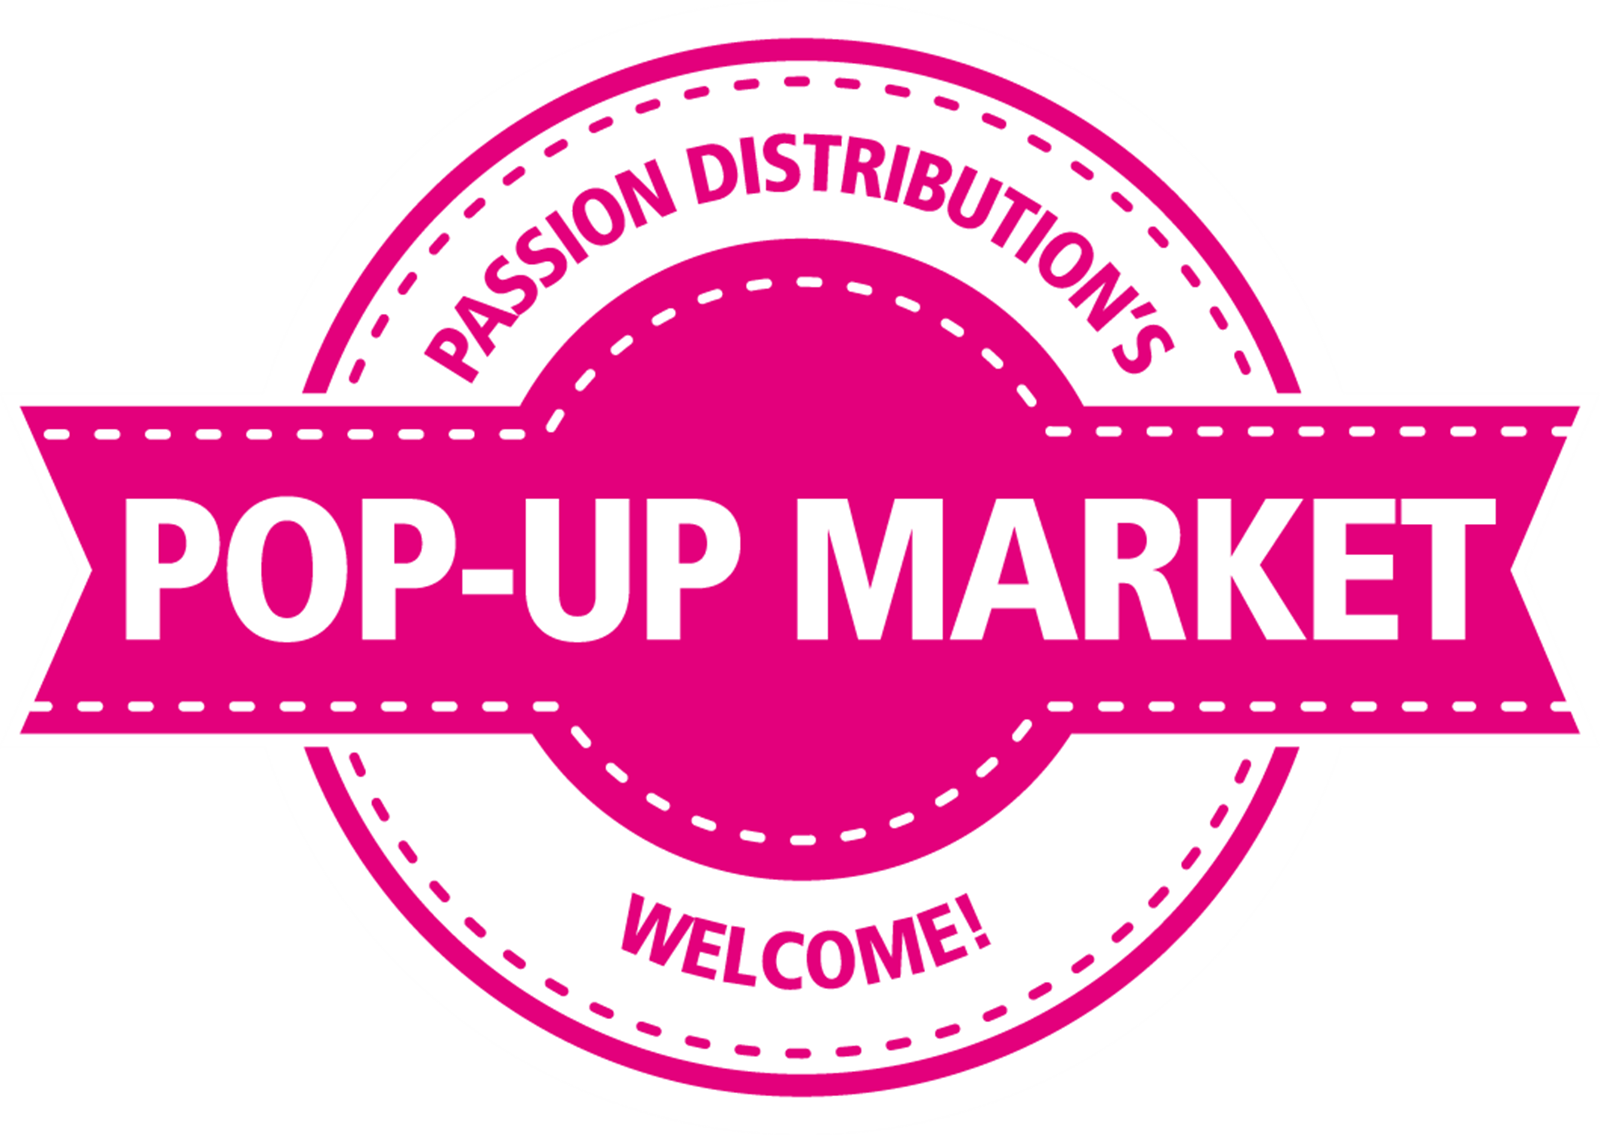 Passion Distribution pop up market and latest acquisitions announced